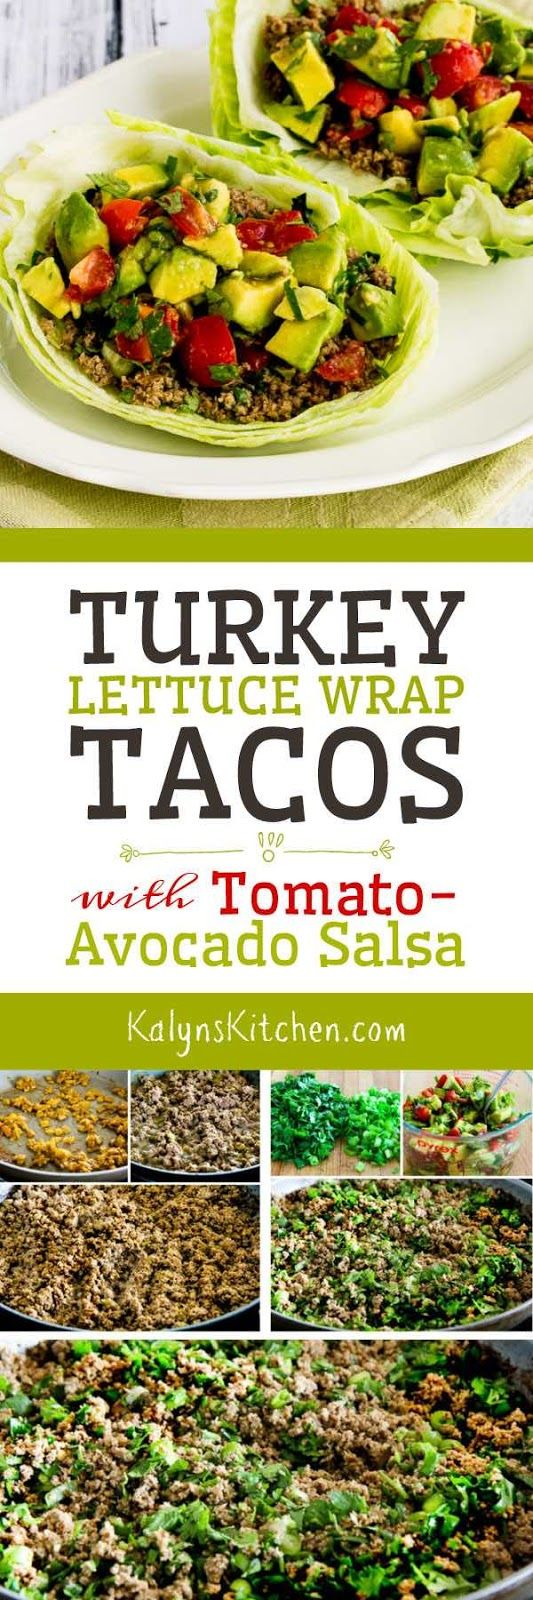 Turkey Lettuce Wrap Tacos with Tomato-Avocado Salsa are a perfect low-carb dinner; this recipe is also Paleo, Whole 30, gluten-free, and South Beach Diet friendly. Turkey Lettuce Wrap Tacos can also be served with chunky salsa from the store if you want an easier version. [found on KalynsKitchen.com]: